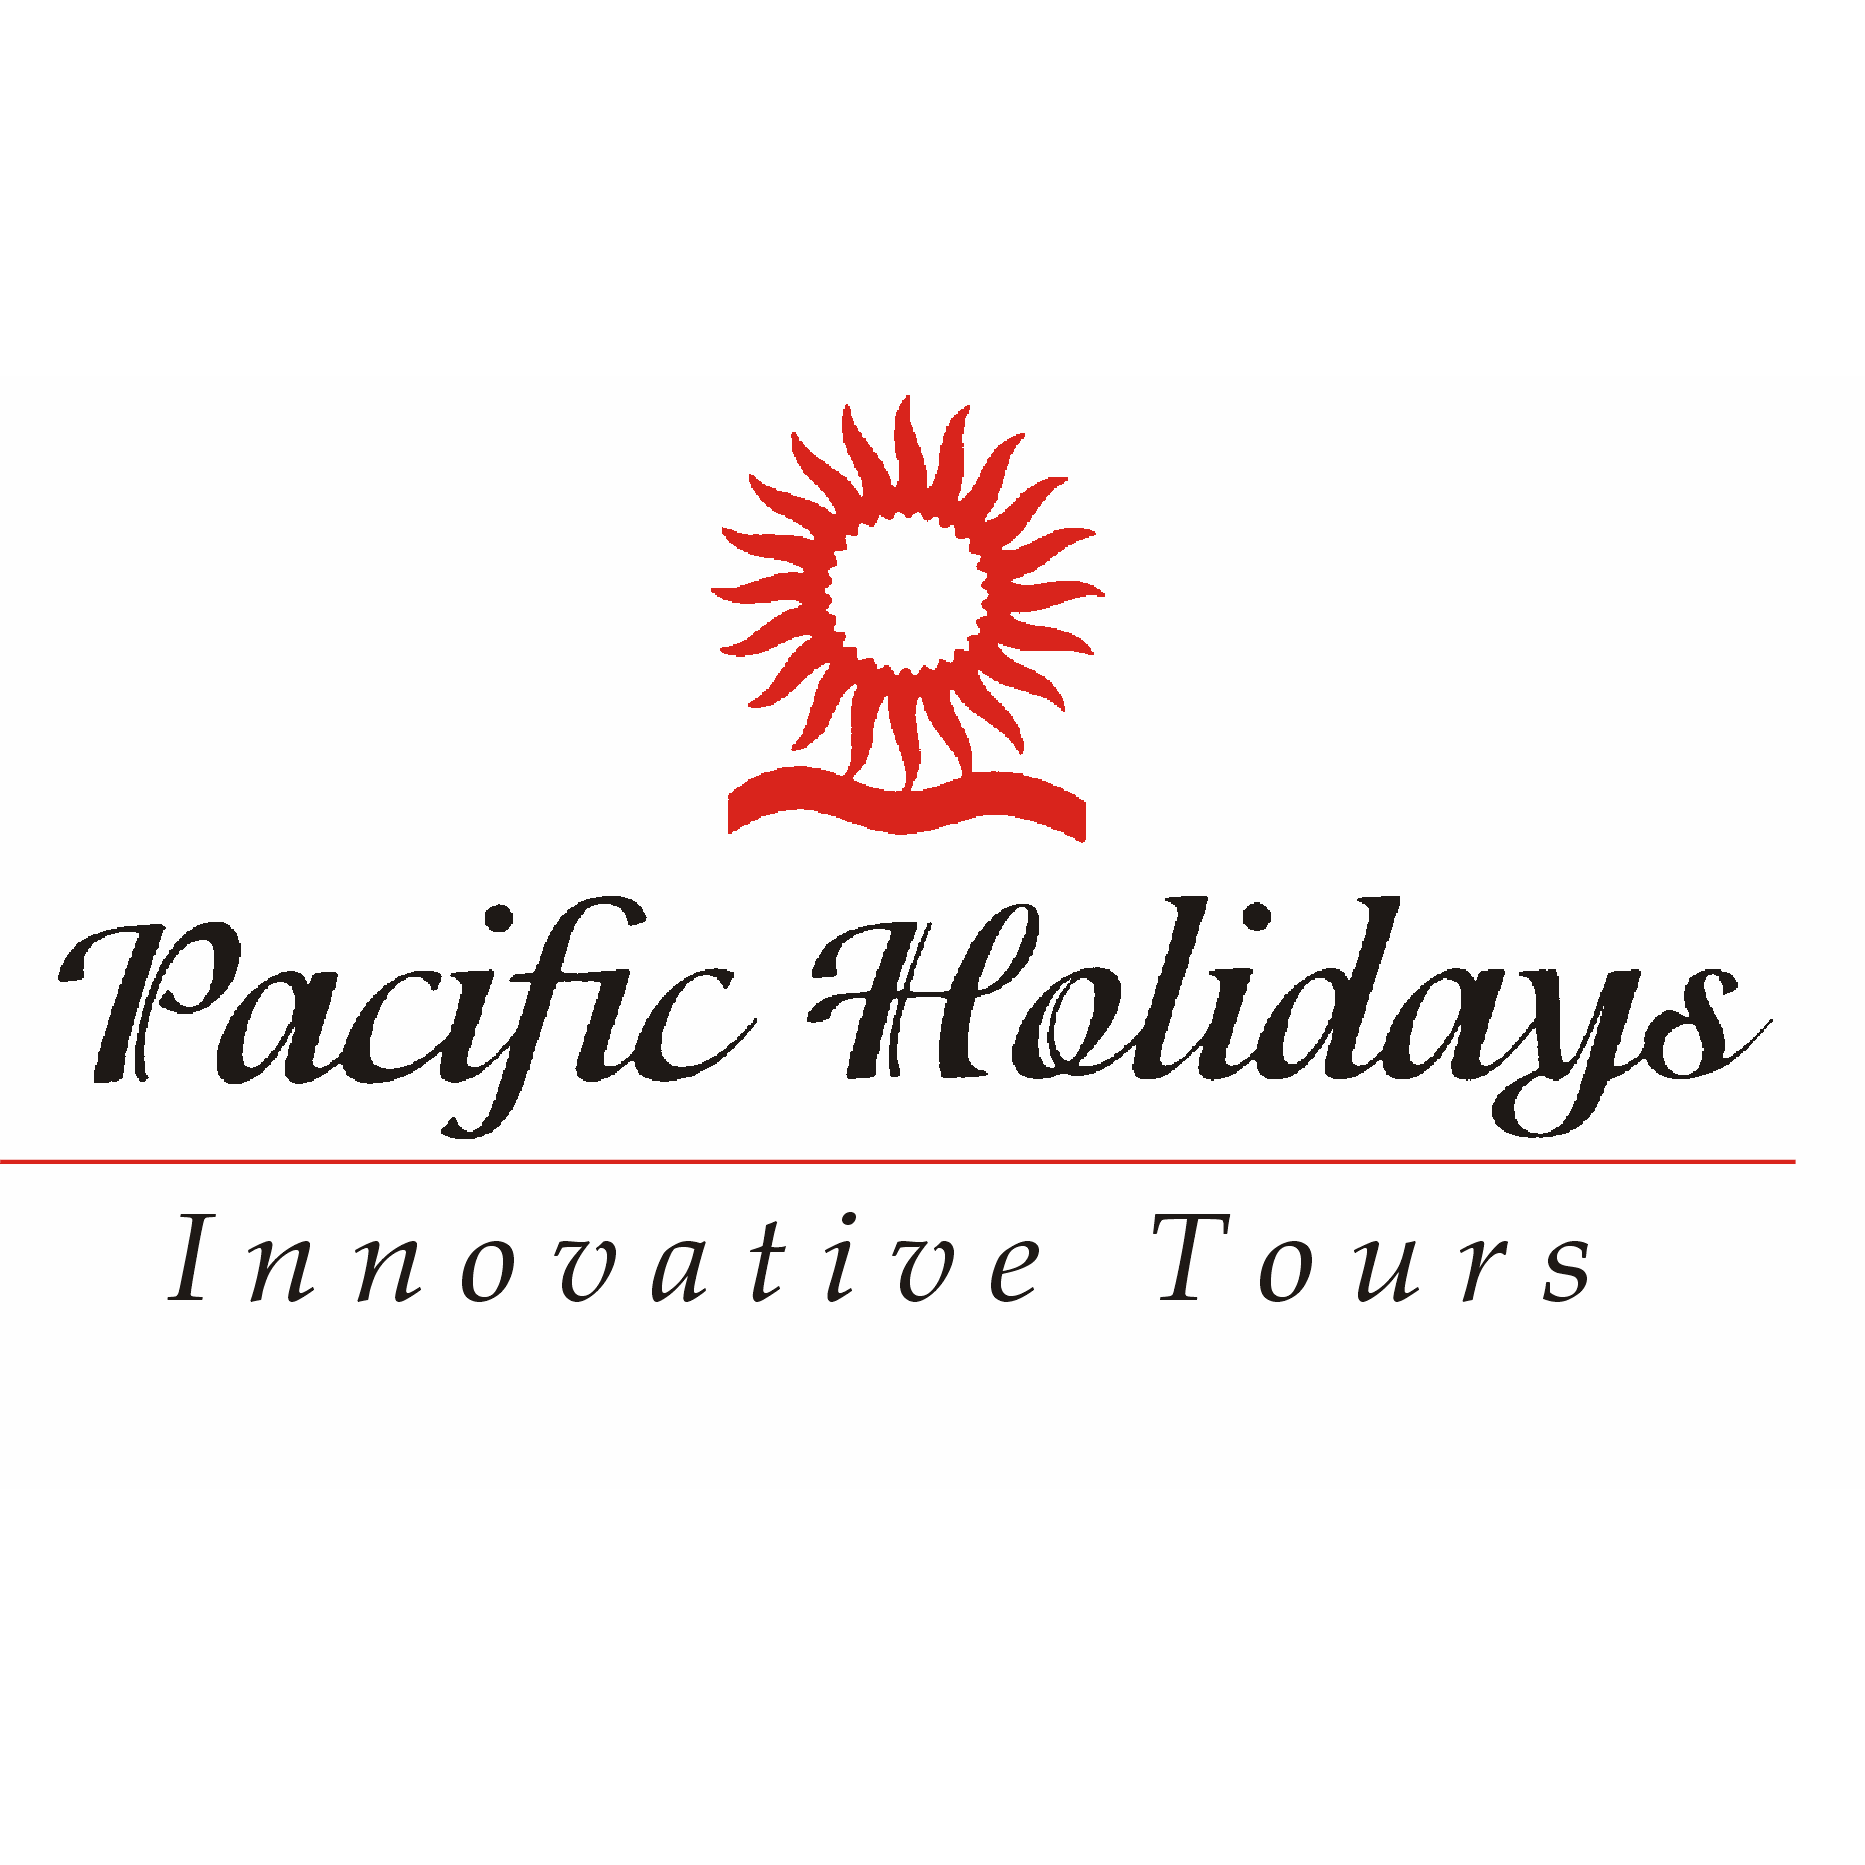 Pacific Holidays Inc.